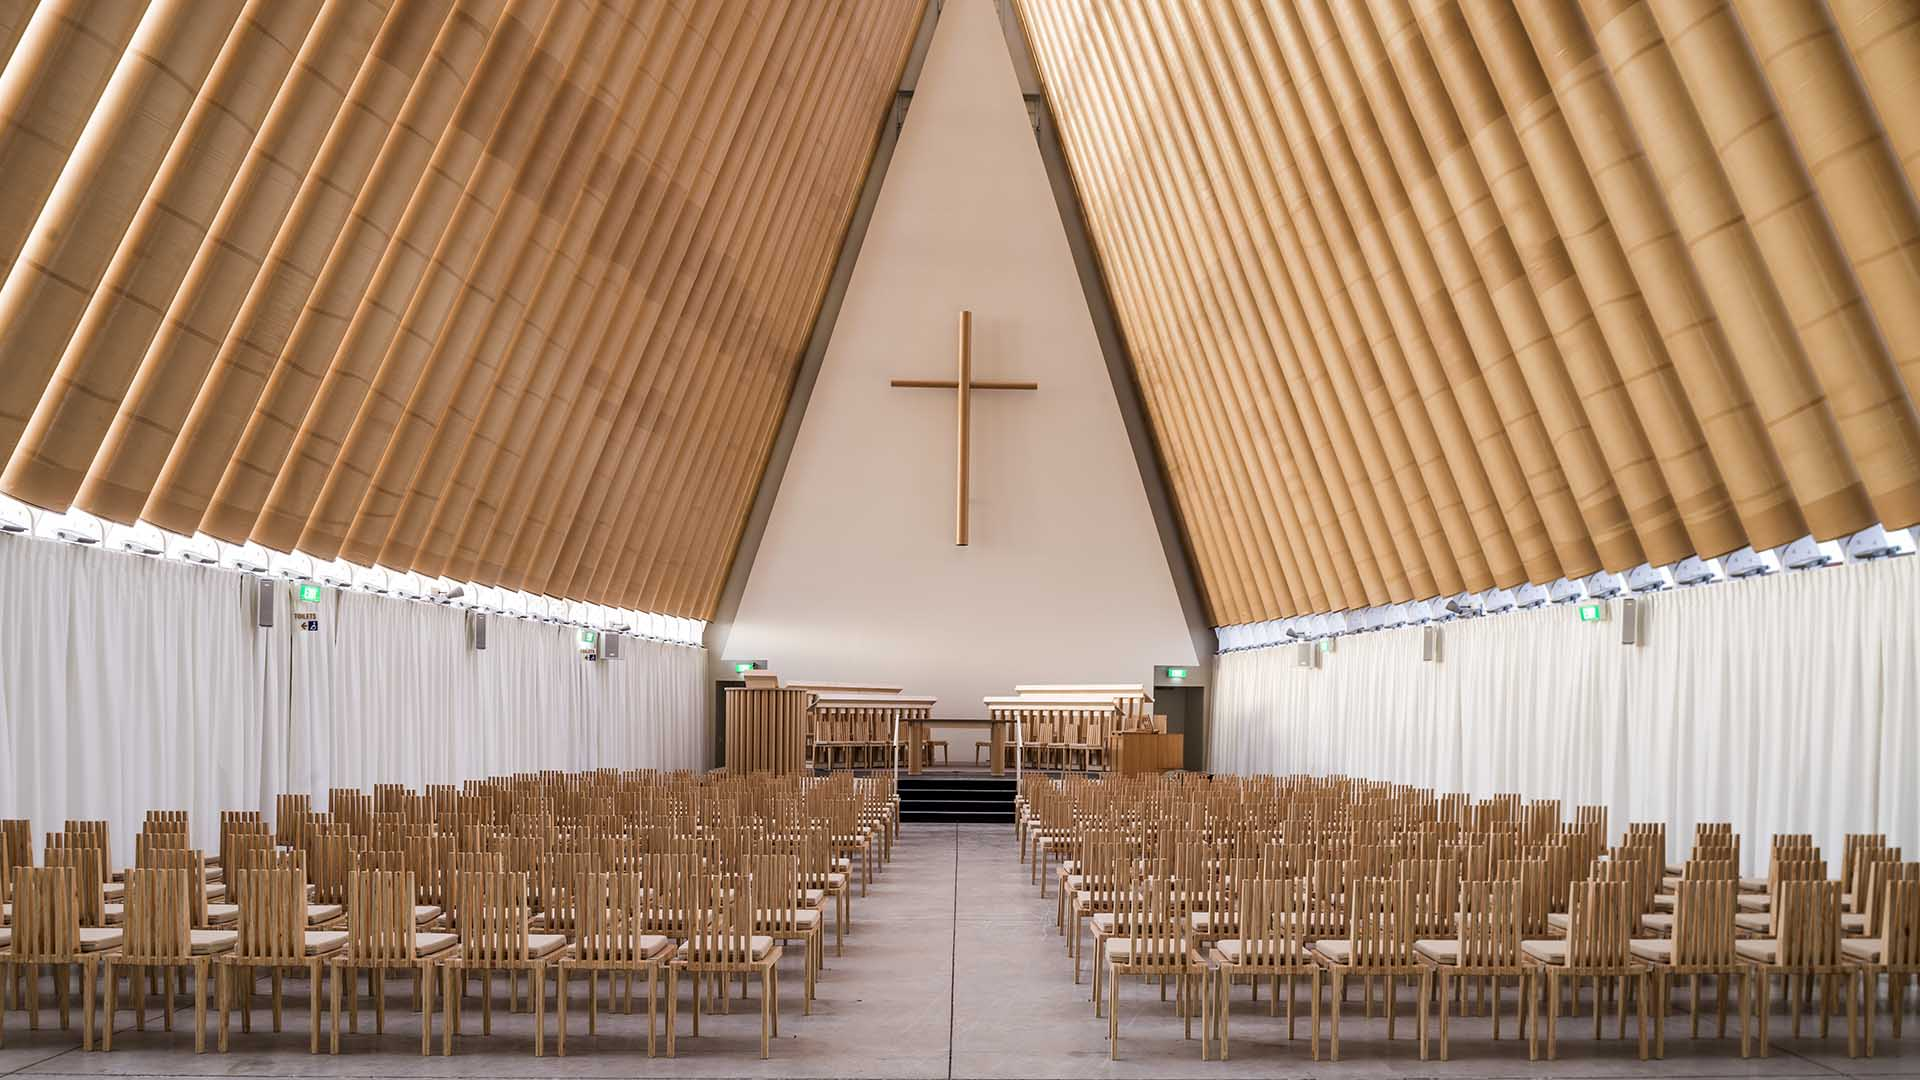 Shigeru Ban's Cardboard Cathedral in Christchurch is an example of temporary building